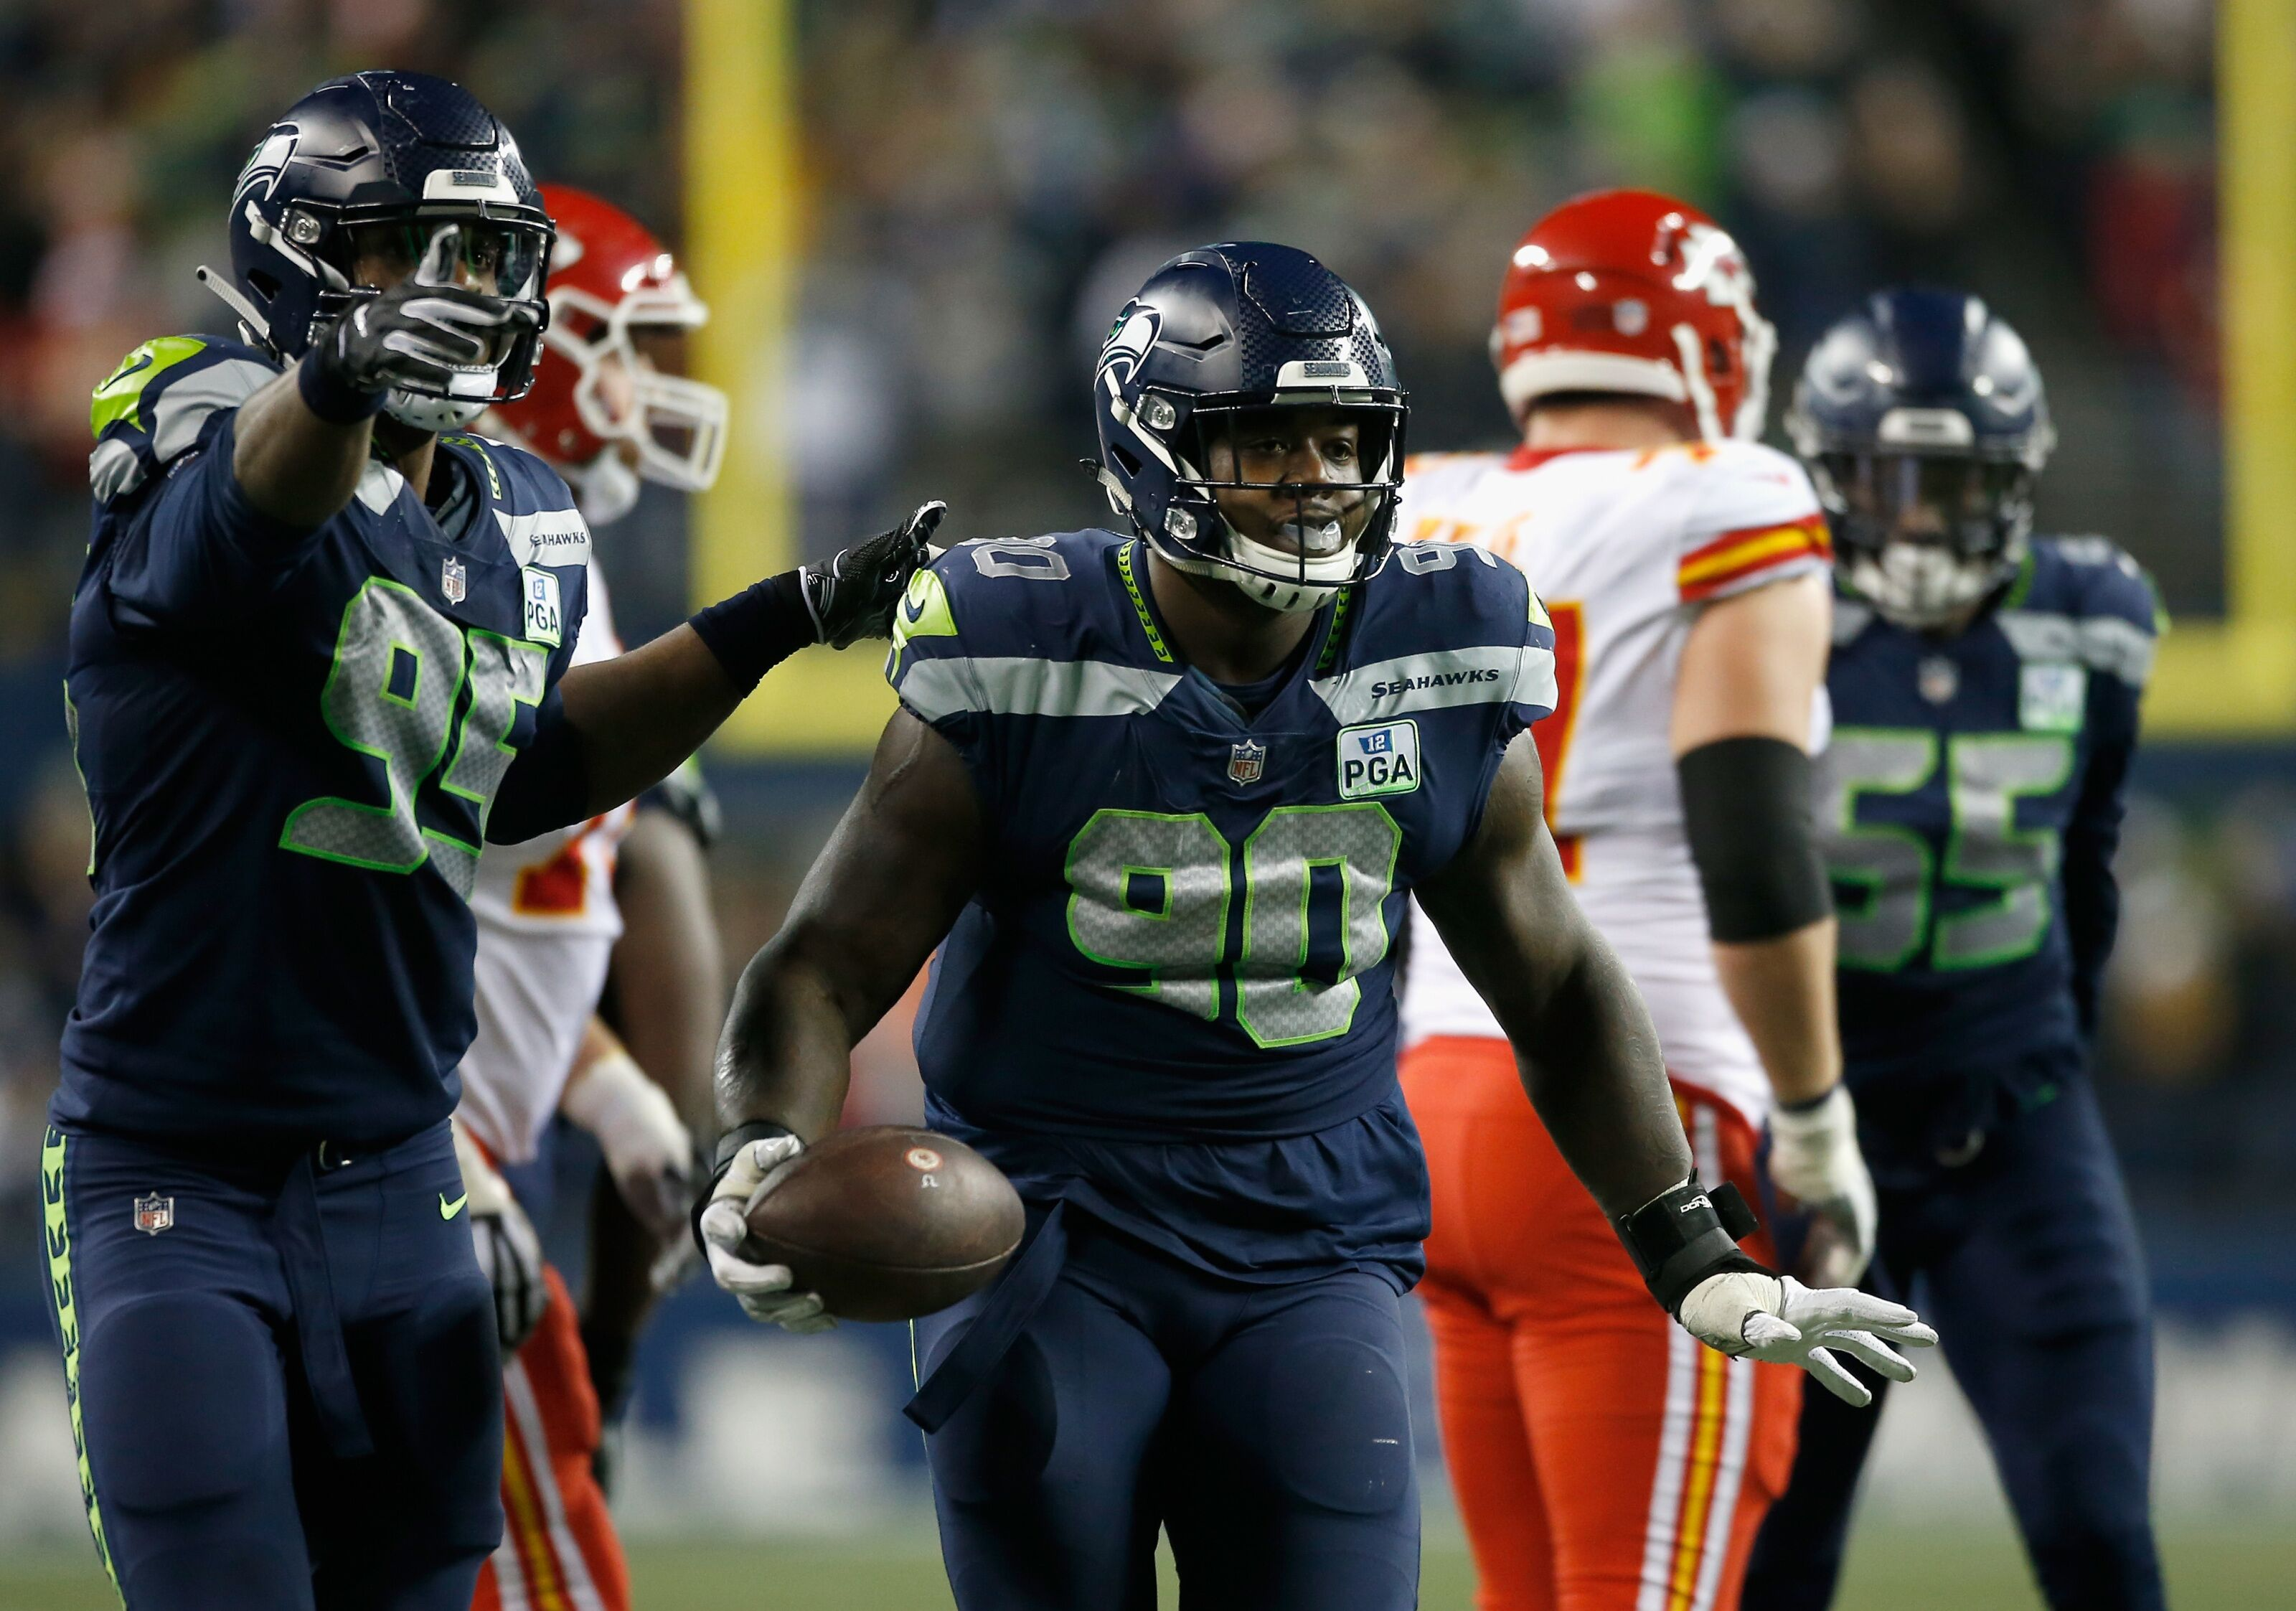 bce2530e2 100 days of Seahawks: Jarran Reed will be Seattle's best number 90 ever